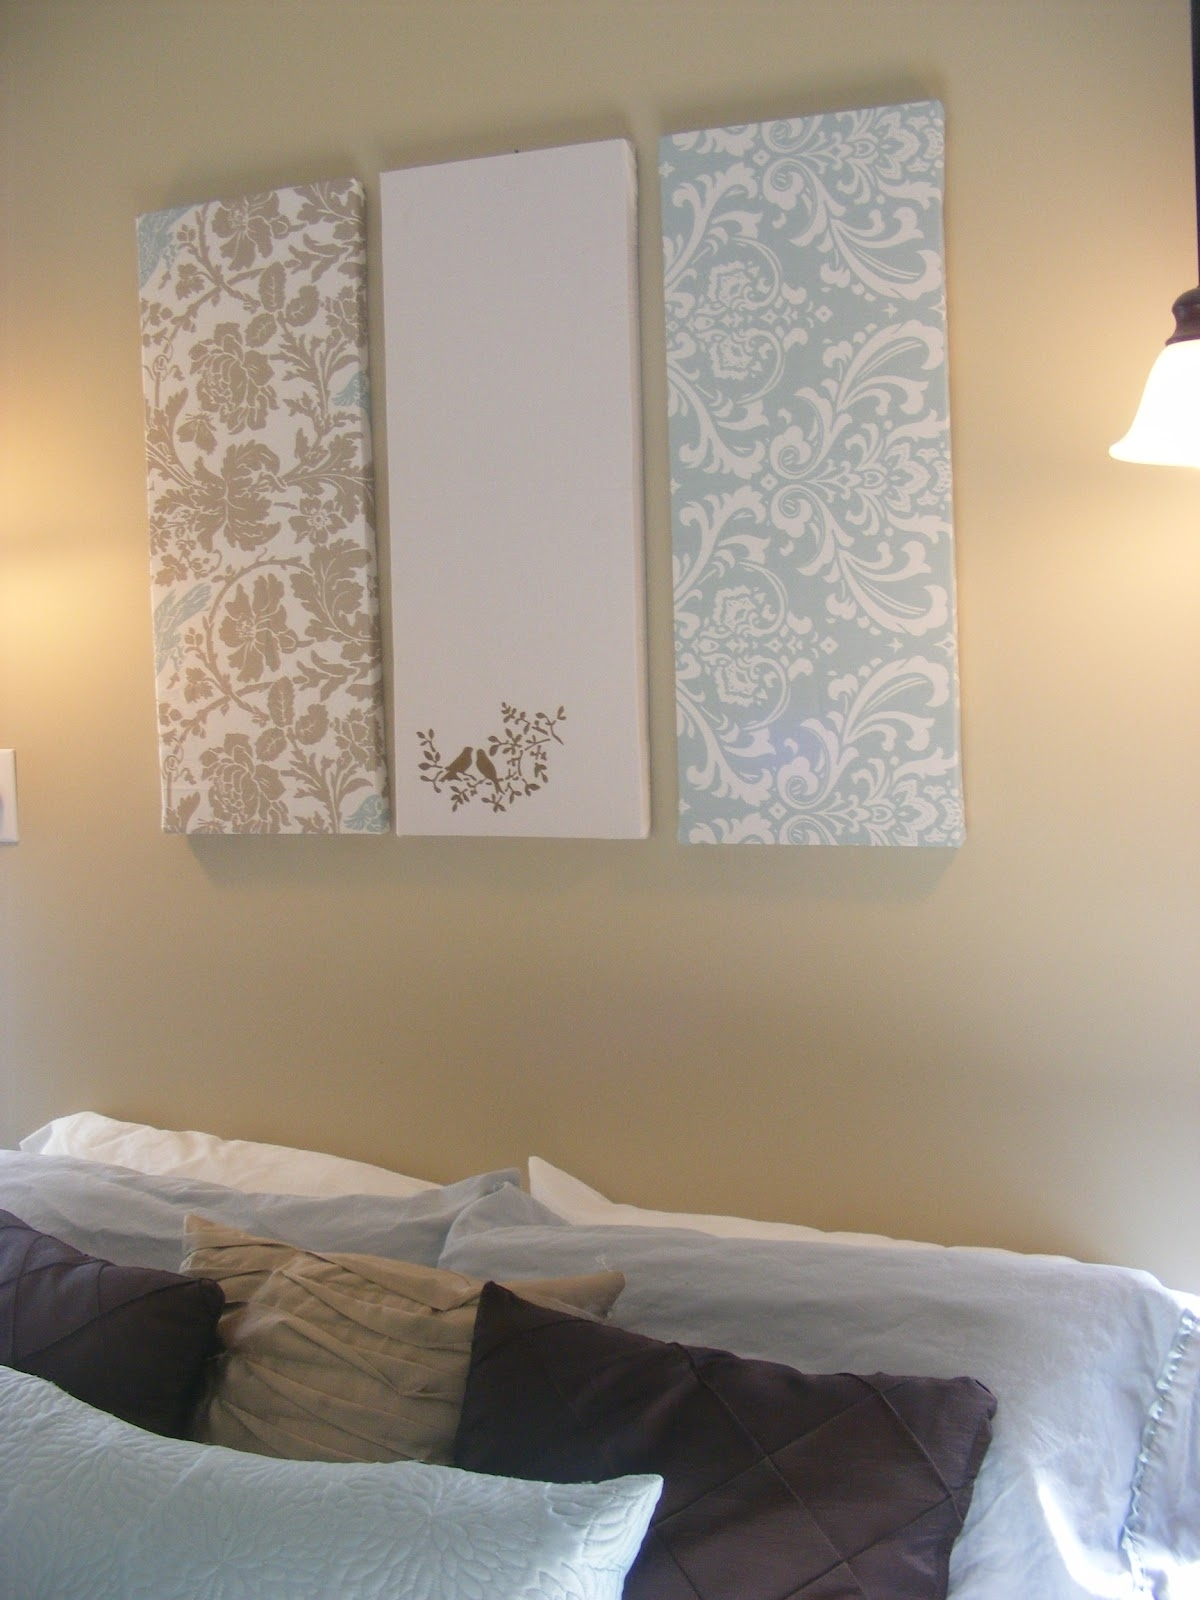 Styrofoam Wall Art With Preferred The Complete Guide To Imperfect Homemaking: Simple, Thrifty Diy Art (View 13 of 15)